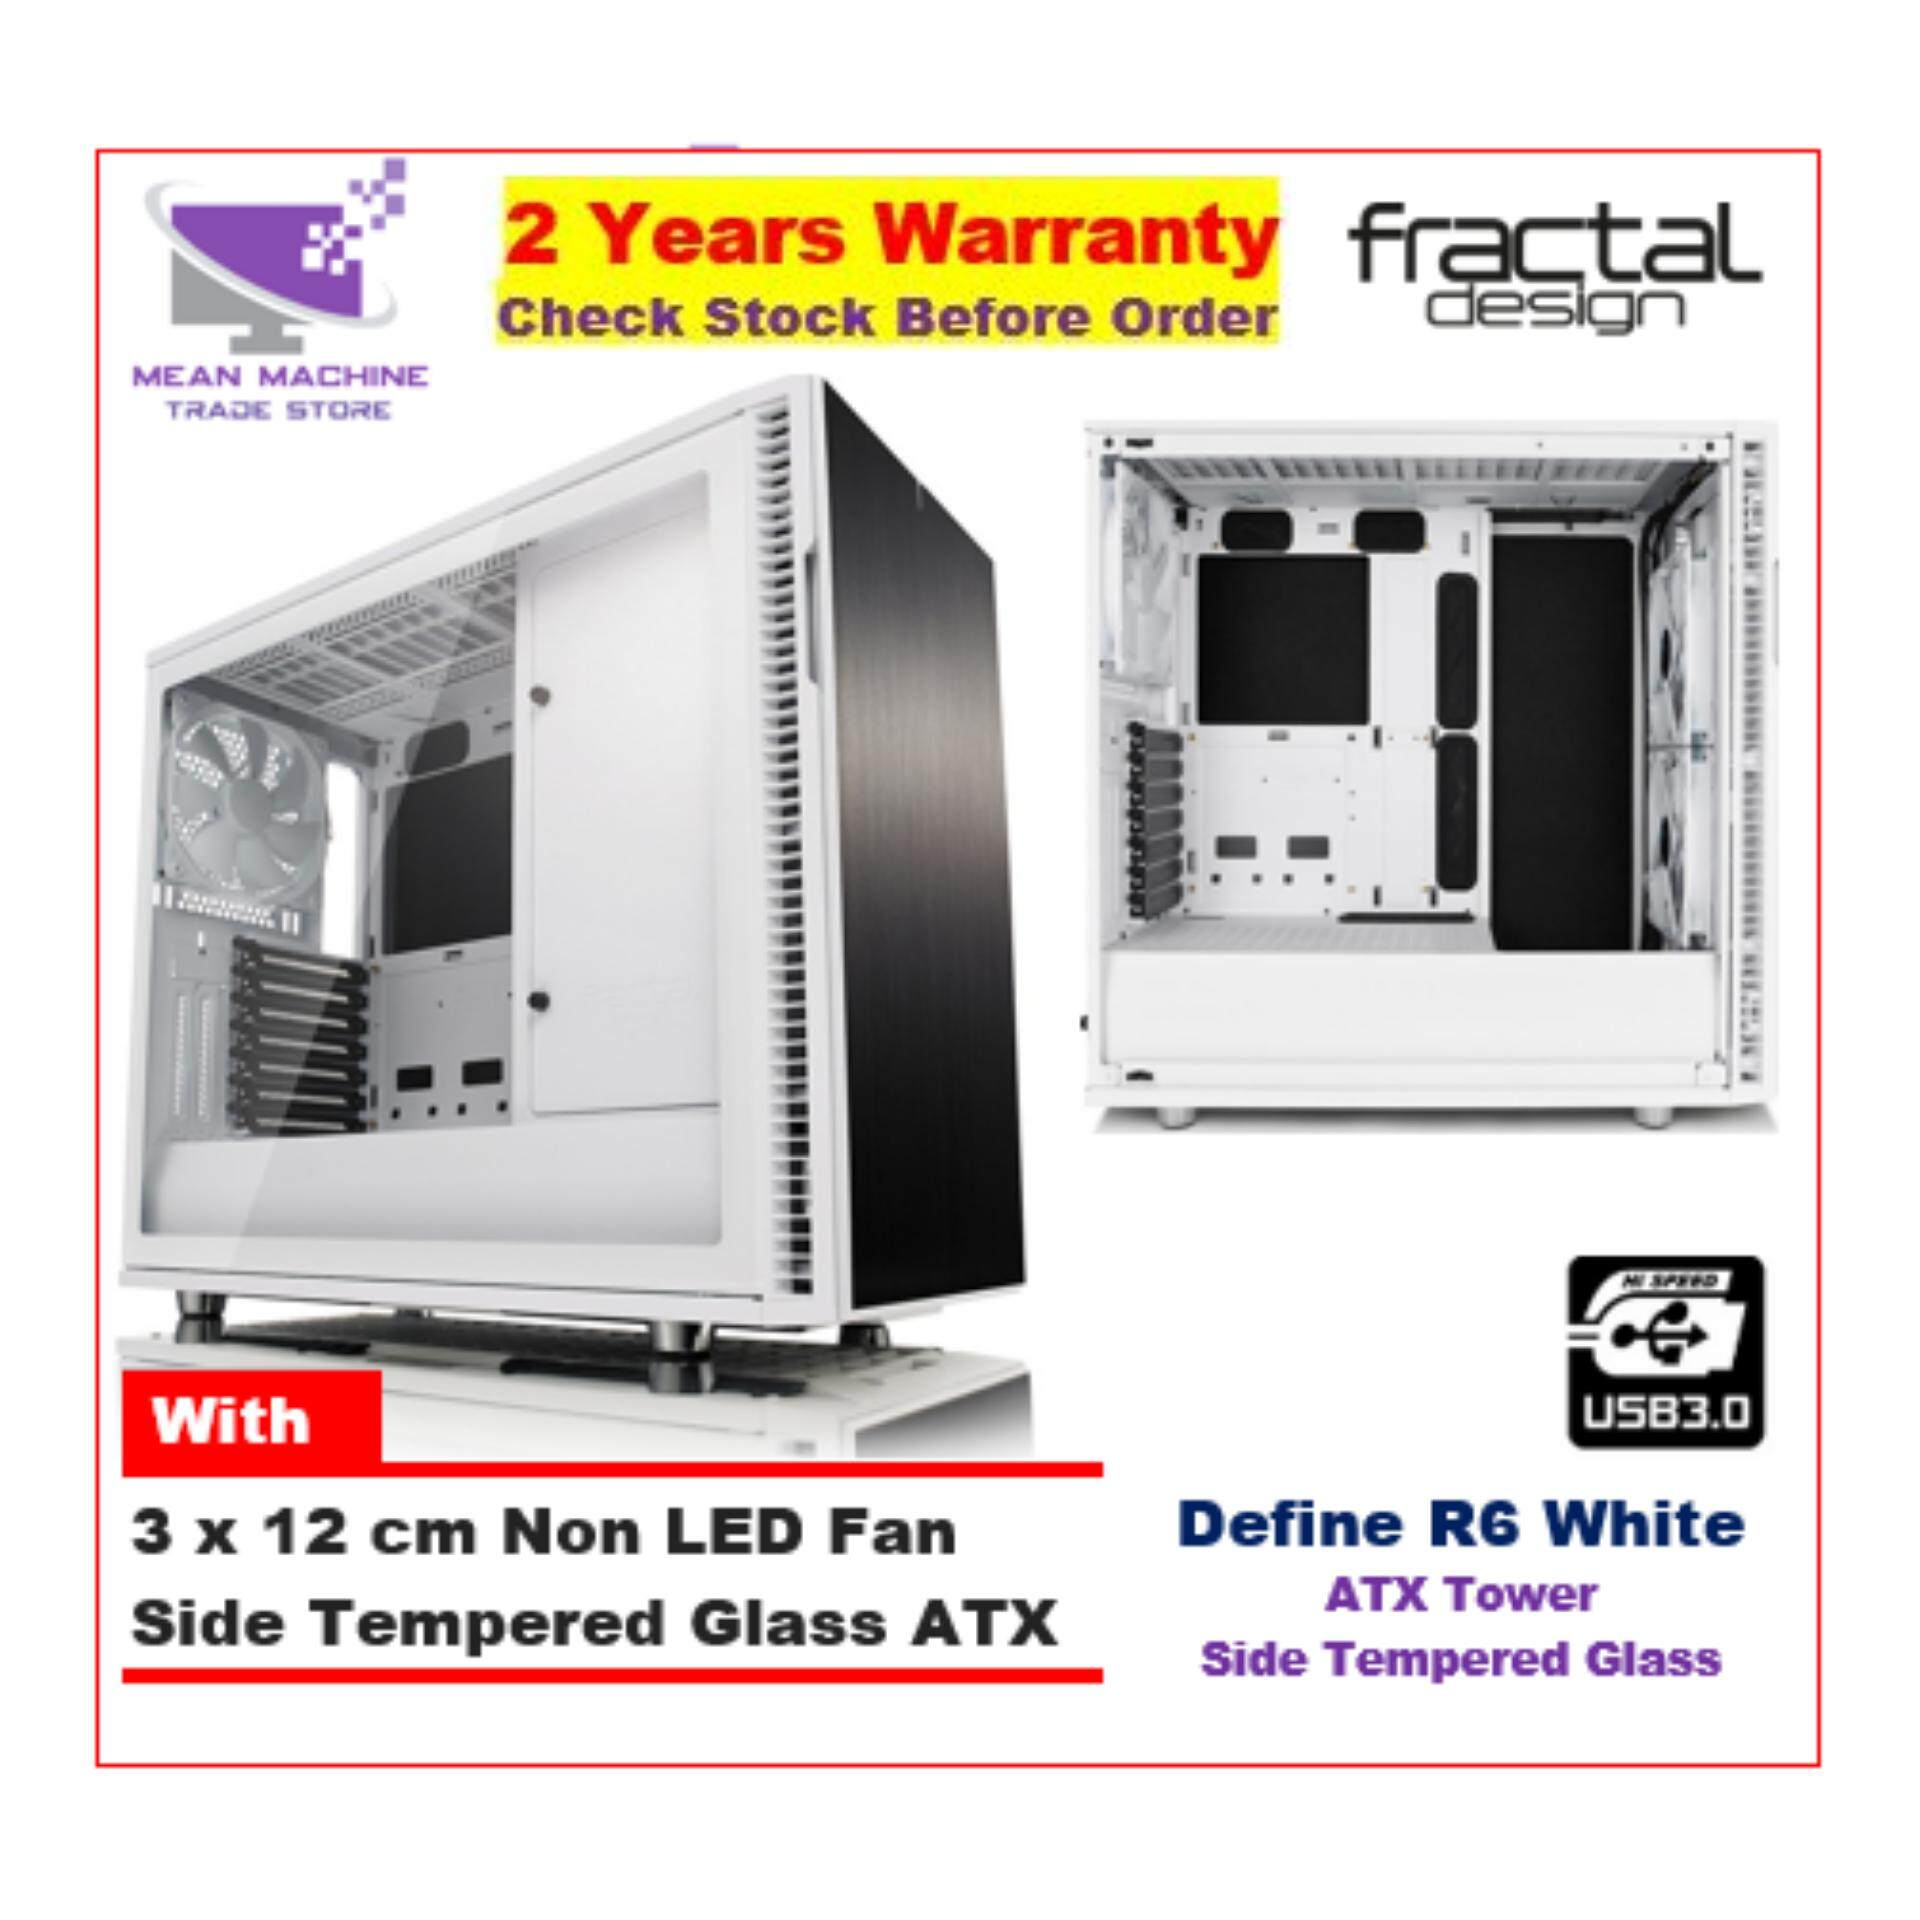 #Fractal Design Define R6 White TG ATX Chassis (With 3 X 12cm Fan) # Malaysia